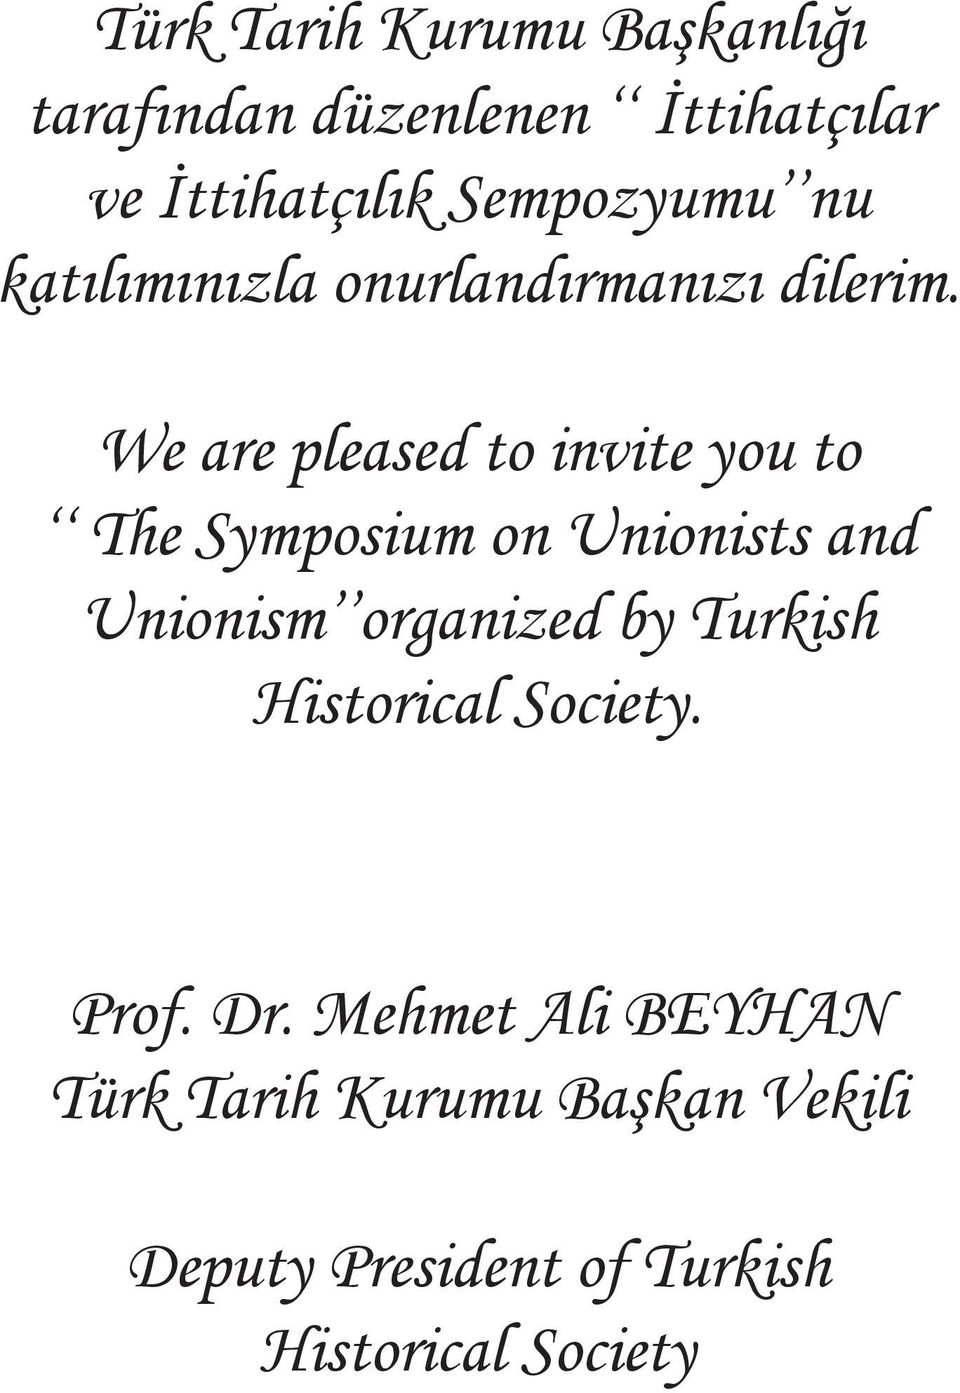 We are pleased to invite you to The Symposium on Unionists and Unionism organized by